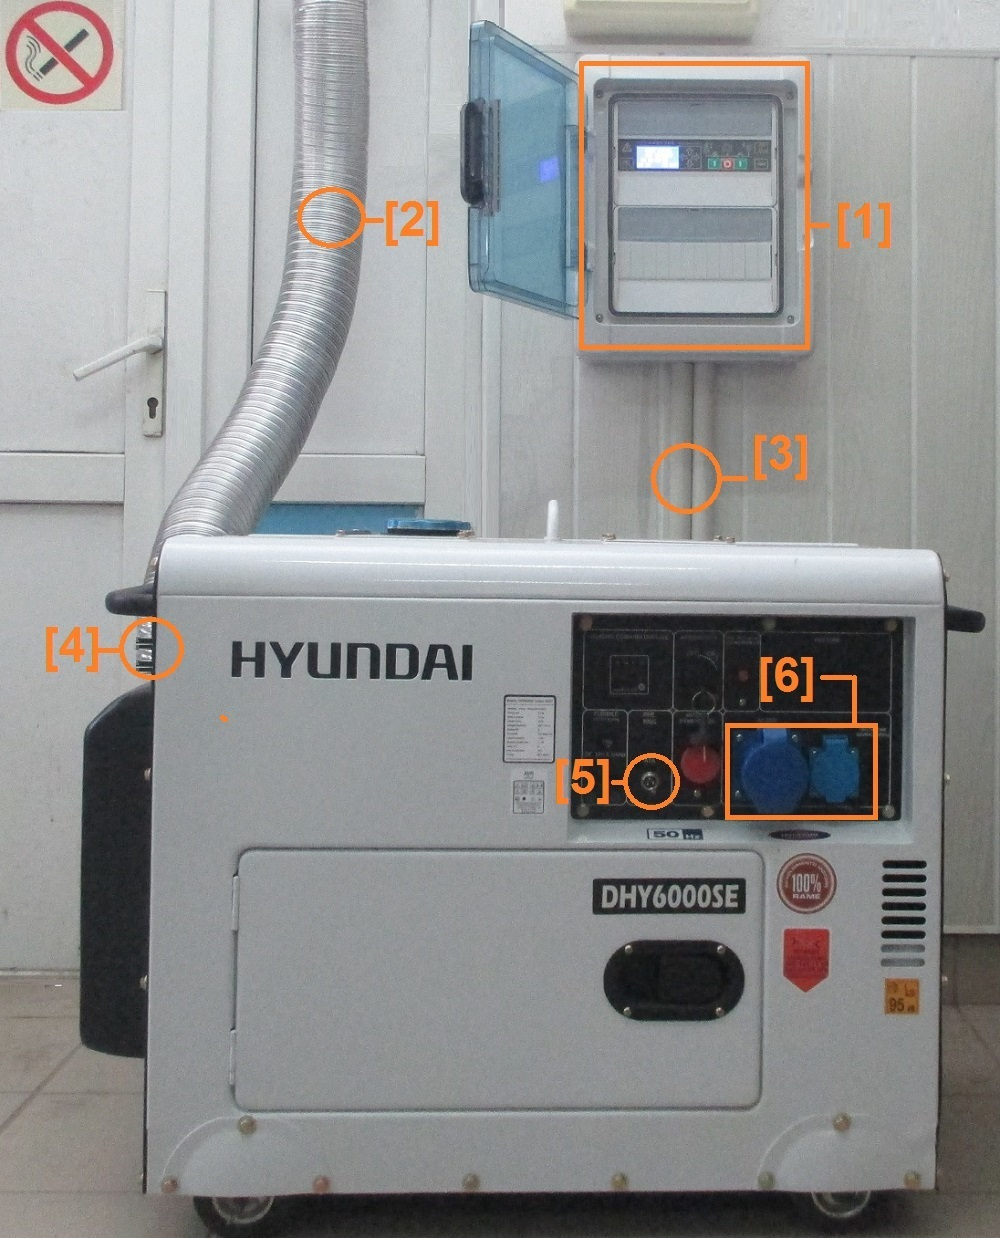 How to connect a Hyundai generator